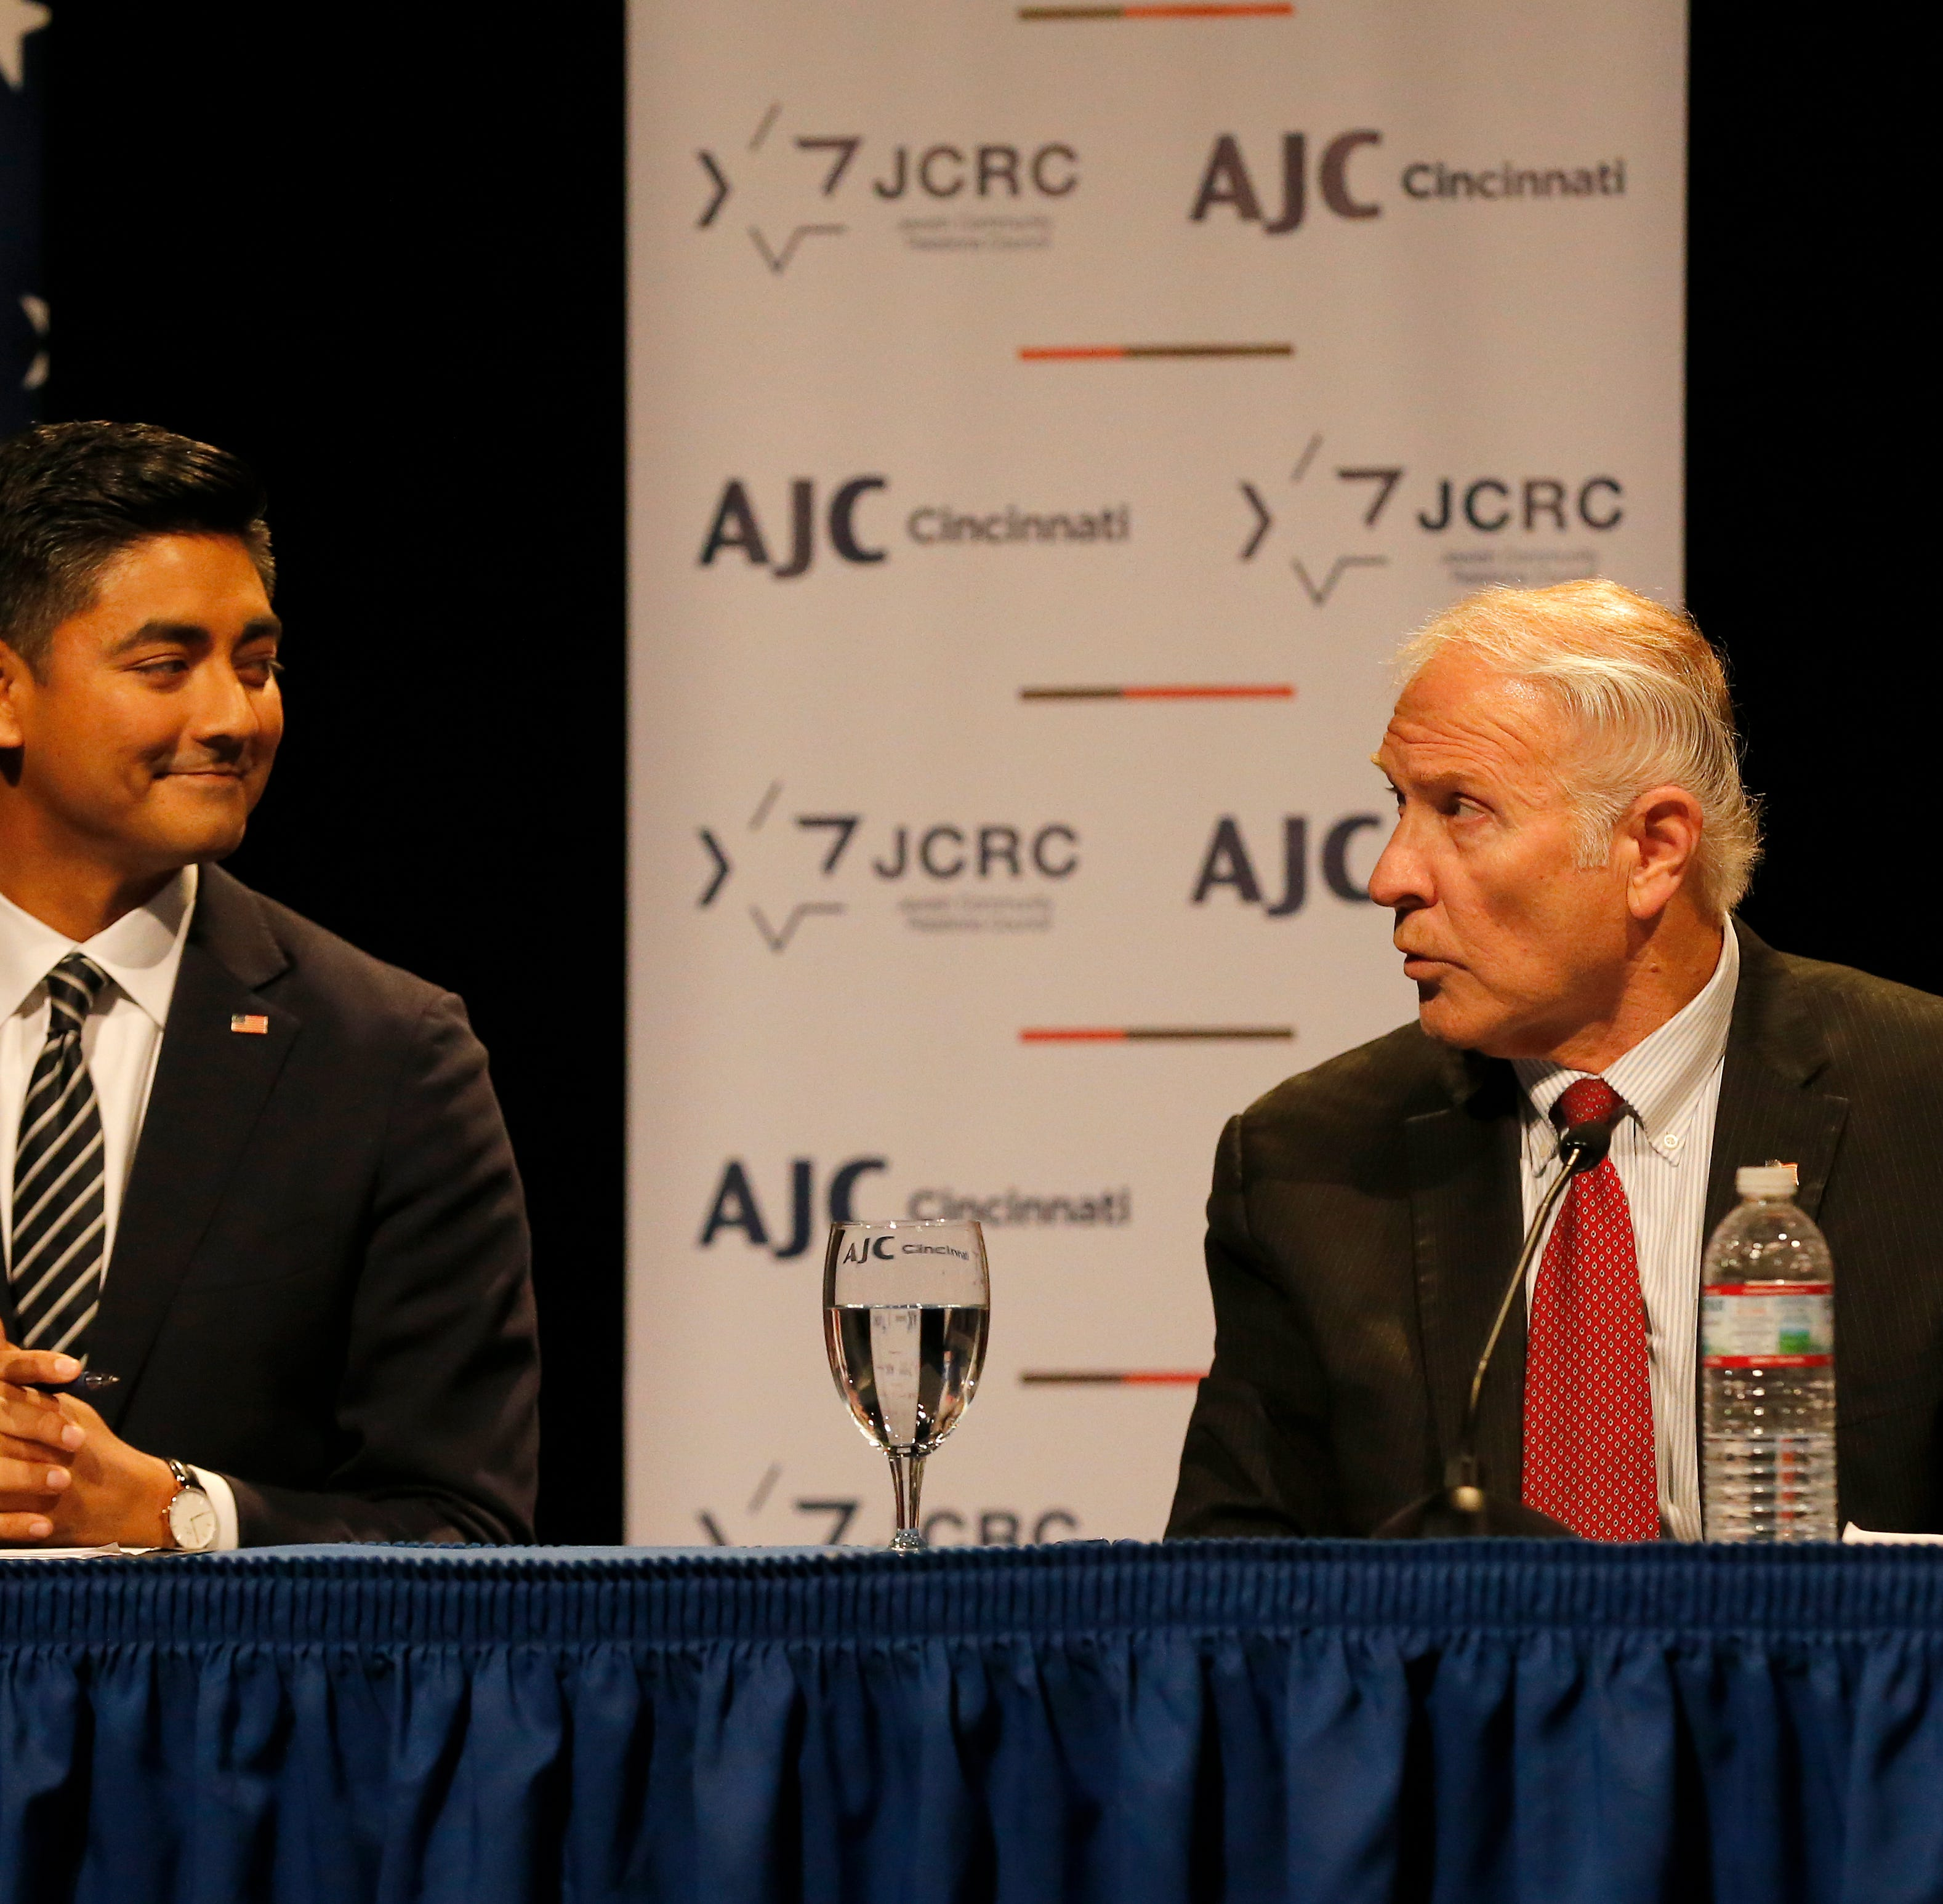 Steve Chabot vs. Aftab Pureval: Republicans outpacing Democrats in early voting/absentee ballots